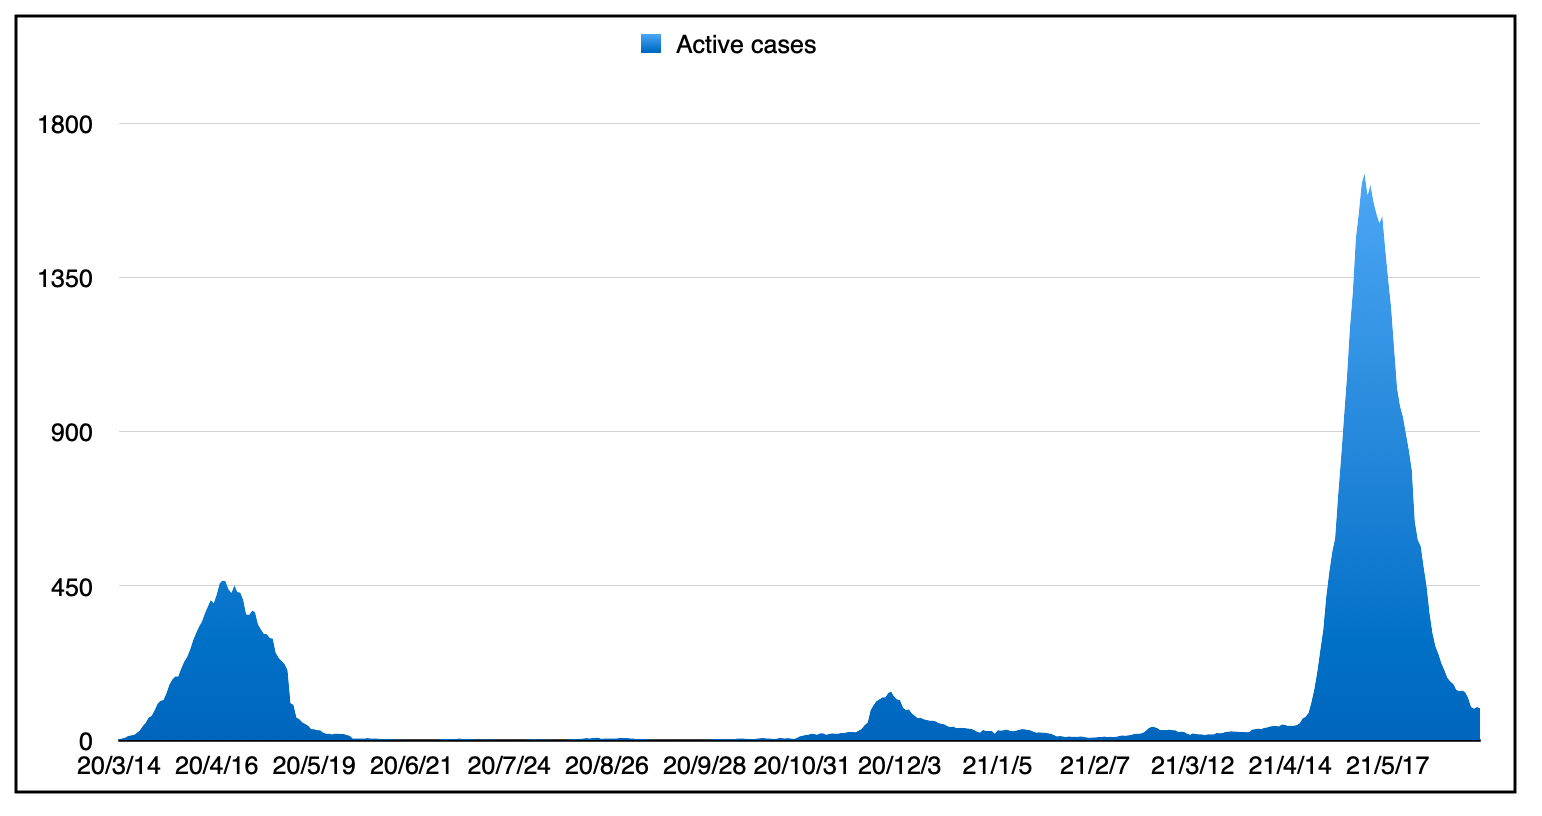 The three waves of active cases since the beginning.